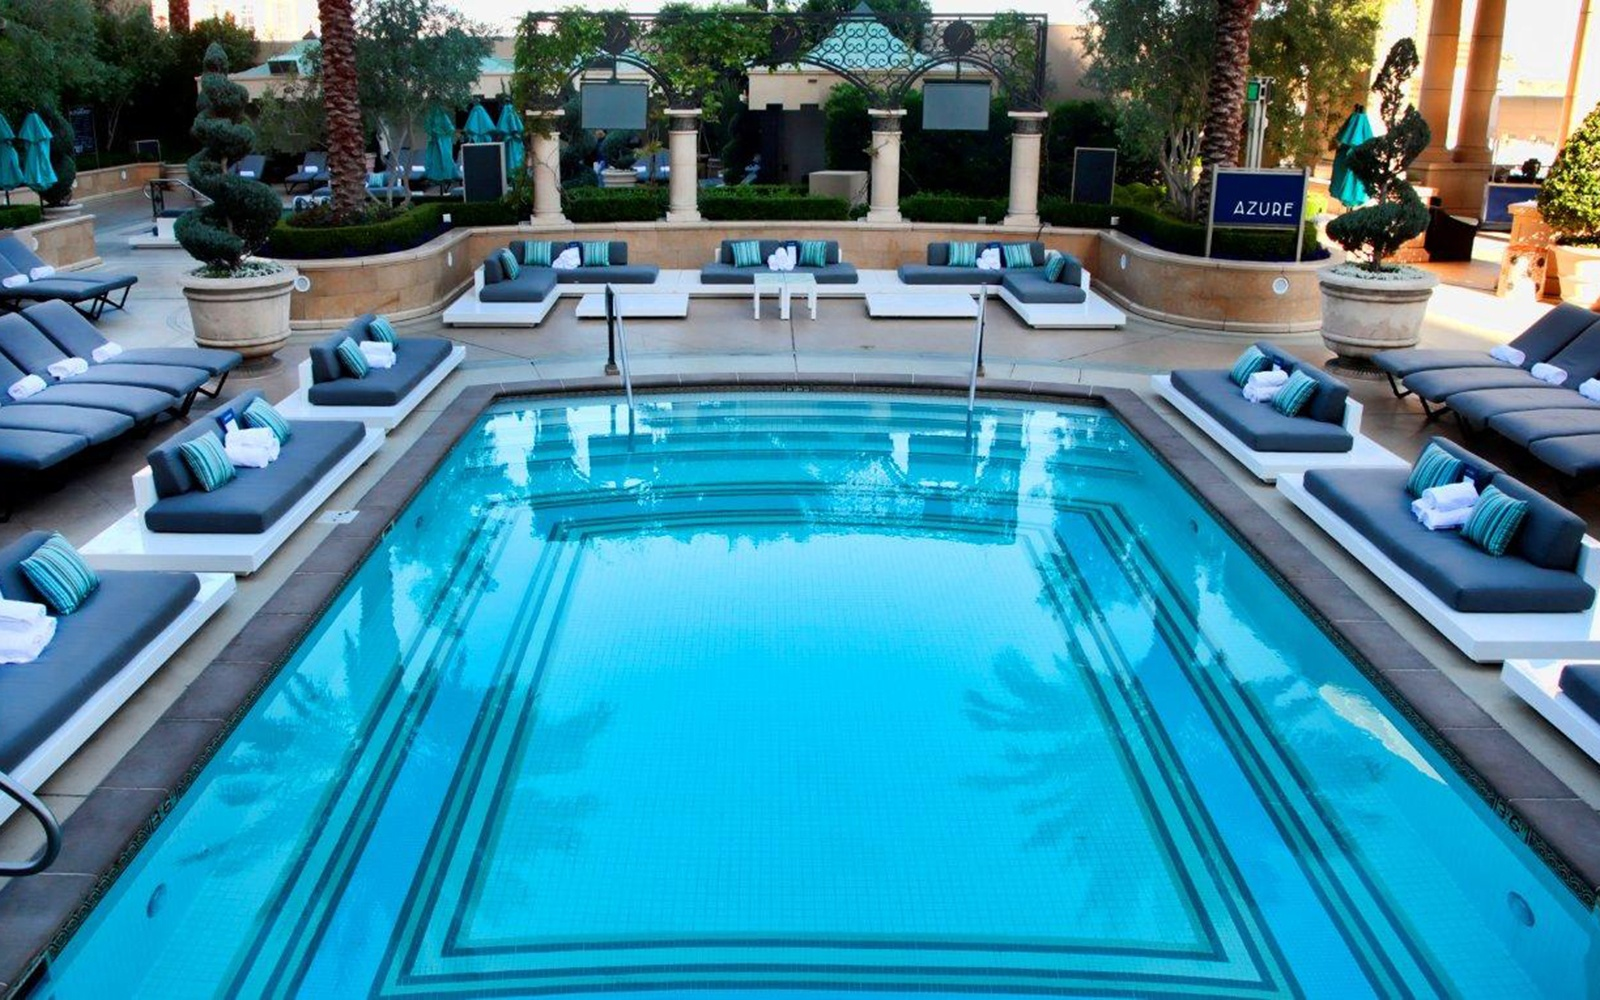 Vegas 39 best pools from dayclubs to djs travel leisure - Whitefish bay pool open swim hours ...